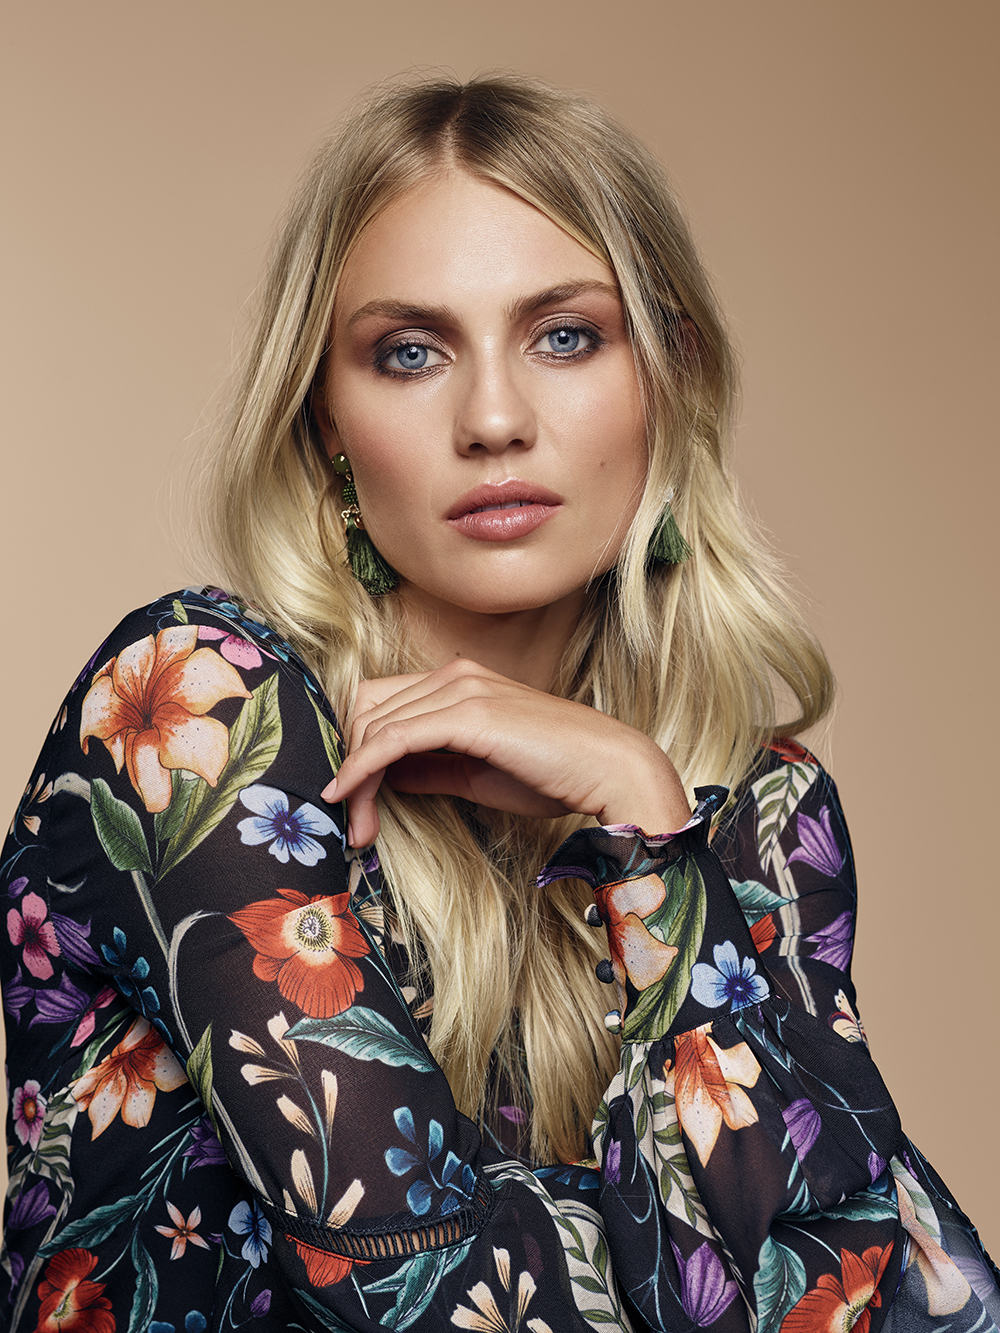 Elyse Knowles Myer Beauty 2018 4.jpg